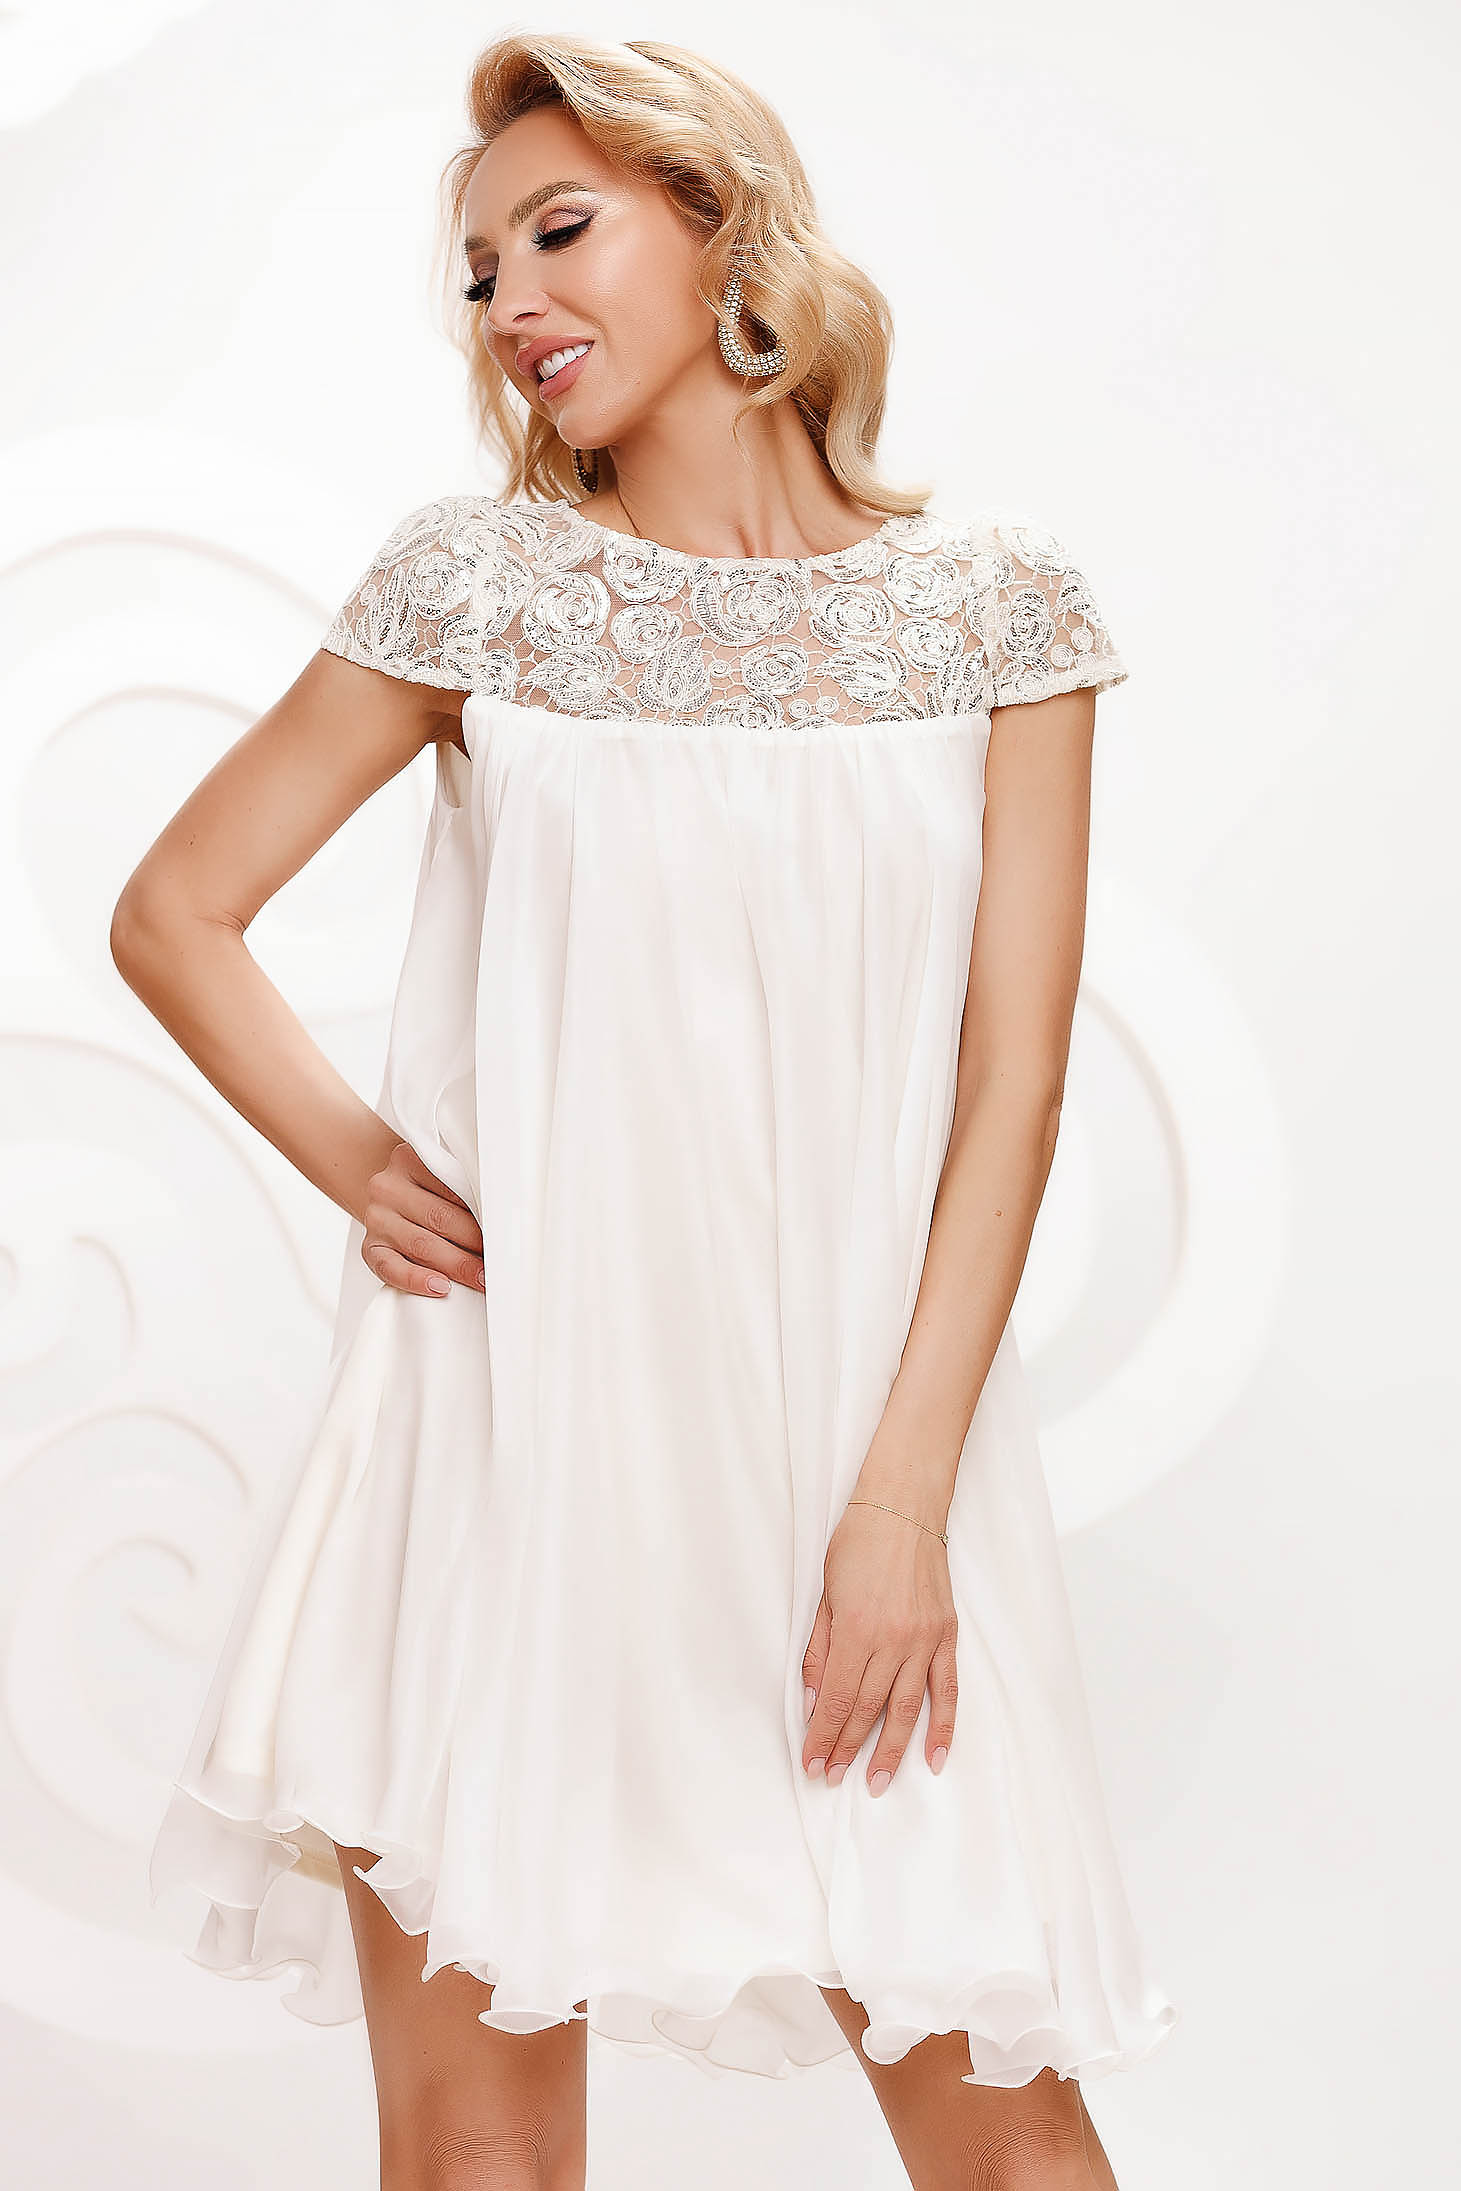 Ivory dress from veil fabric occasional with lace details with crystal embellished details loose fit